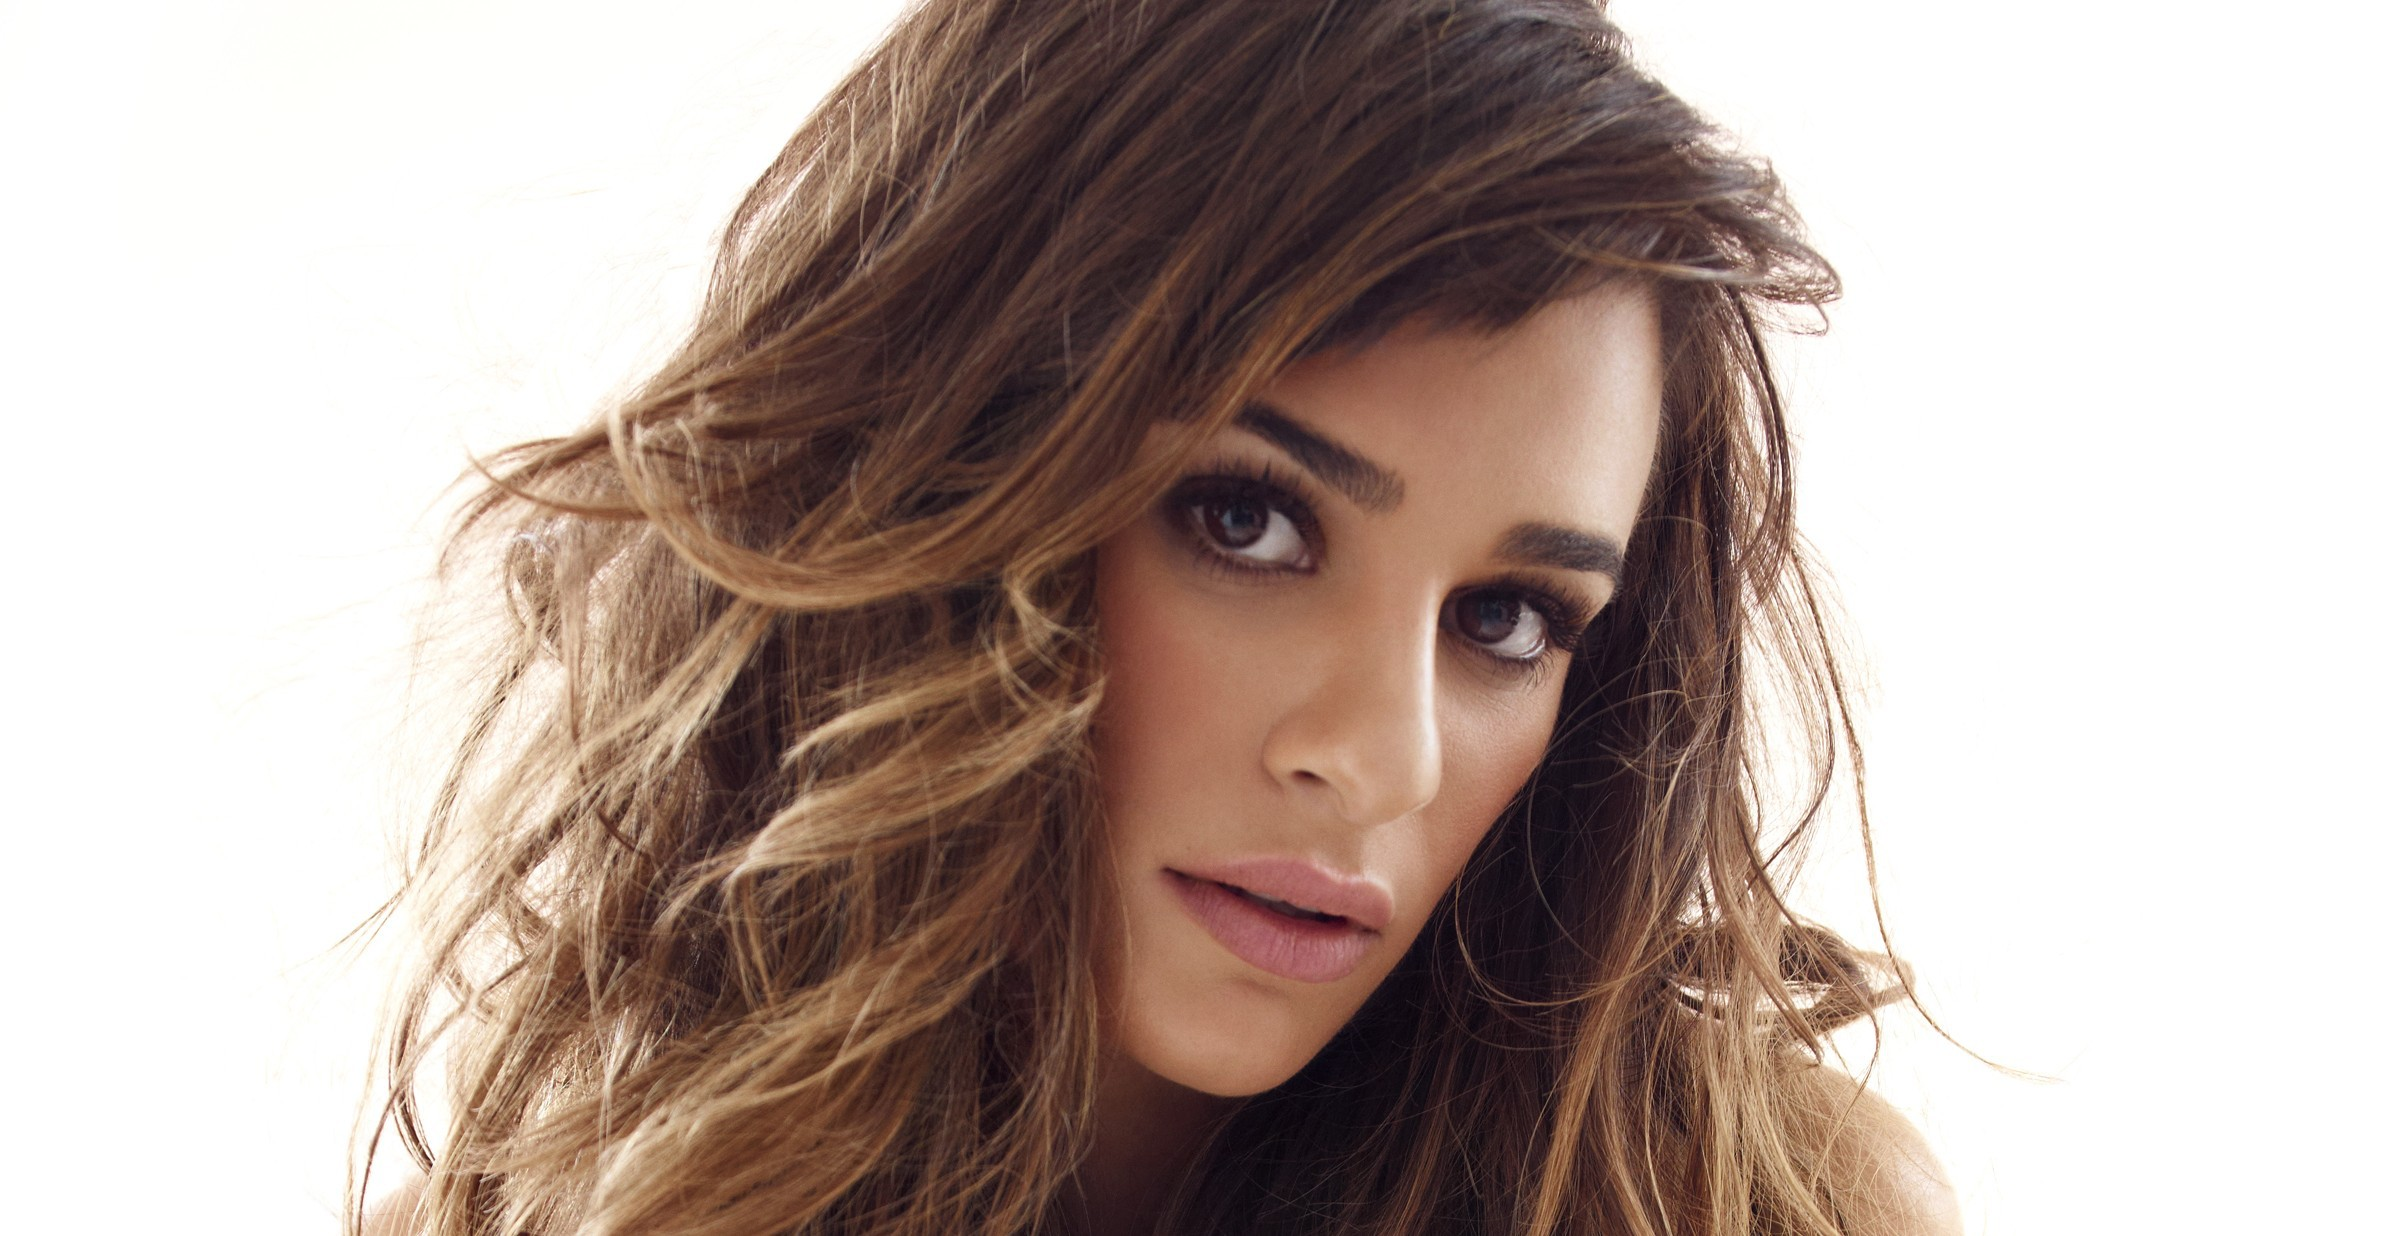 Lea Michele Widescreen